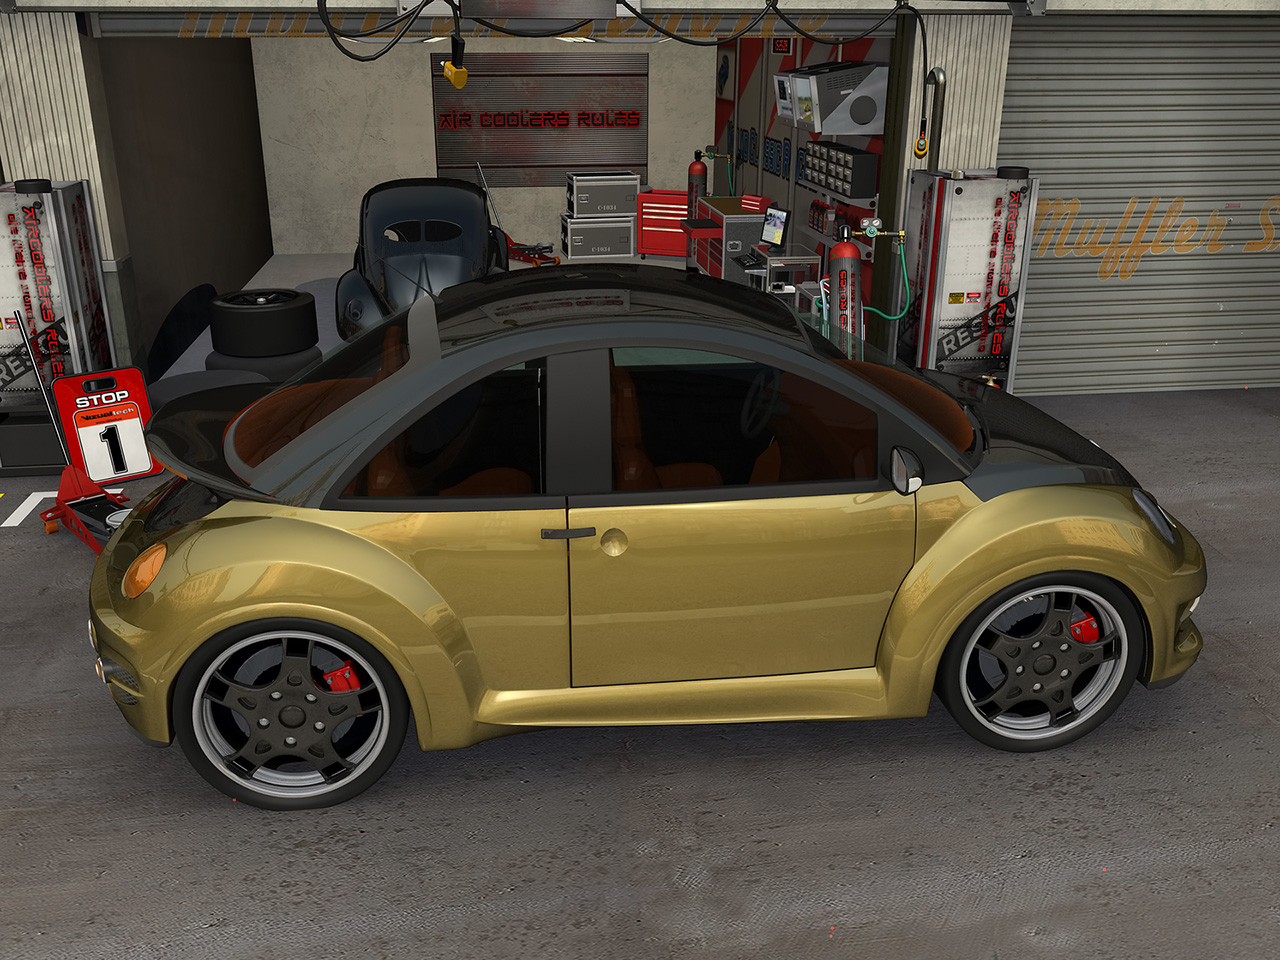 vw new beetle goodwood par jrd tuning bo zolland. Black Bedroom Furniture Sets. Home Design Ideas